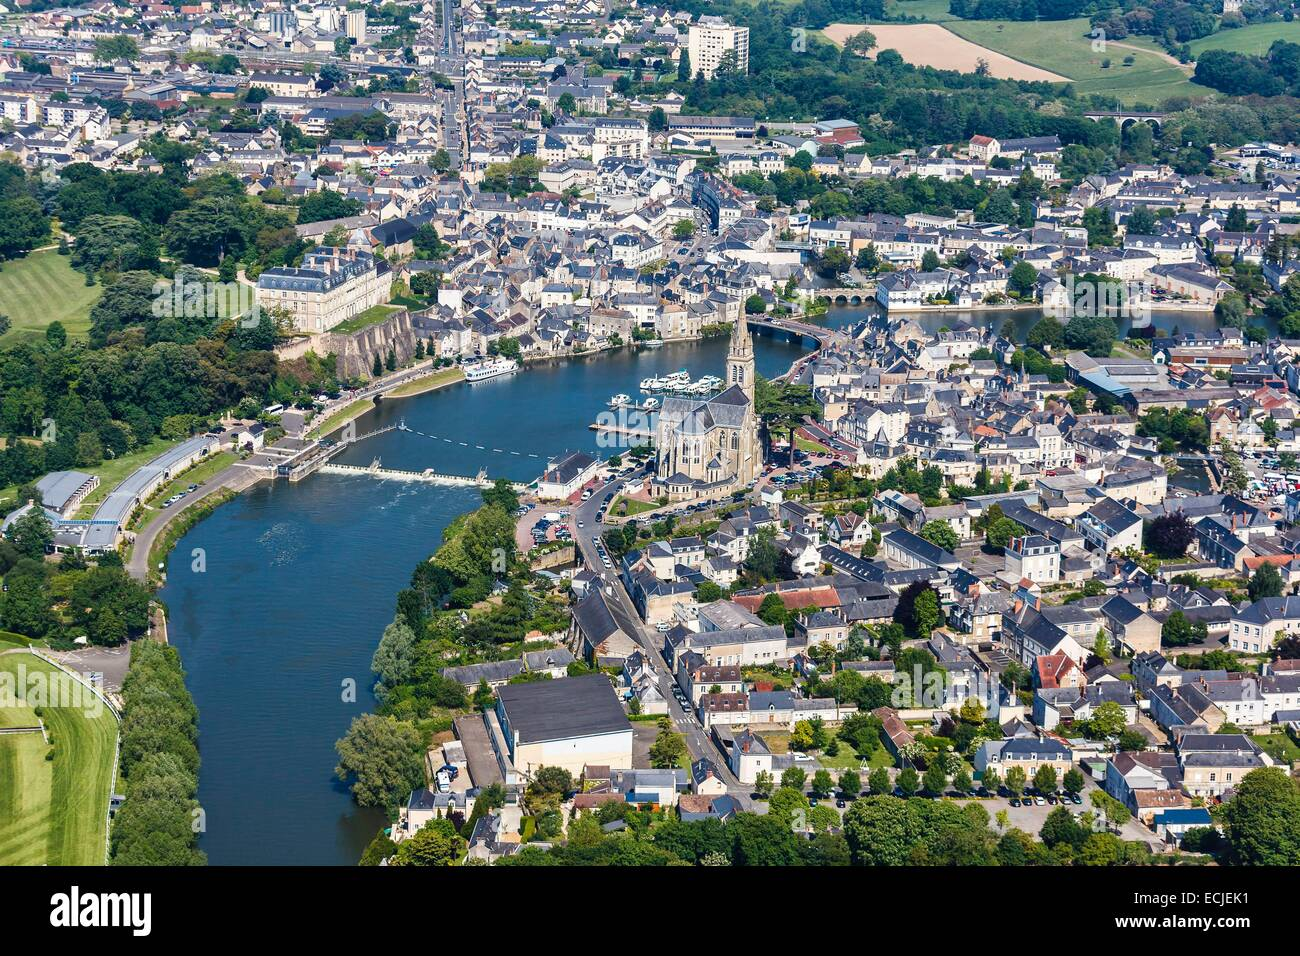 France, Sarthe, Sable sur Sarthe, the town on the Sarthe river (aerial view) - Stock Image